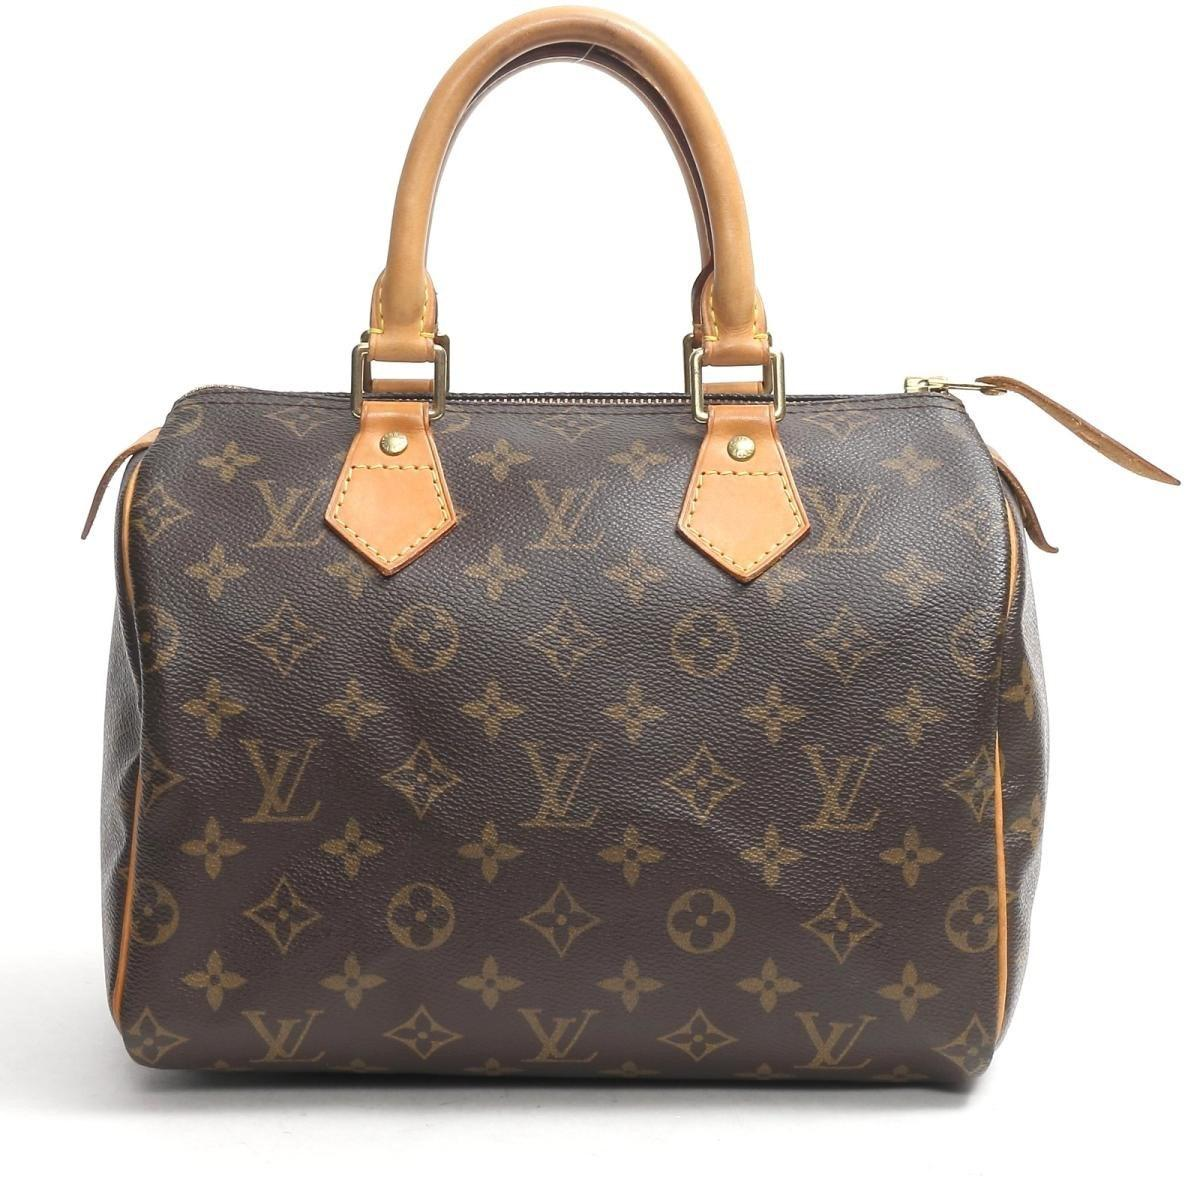 db47d81f Louis Vuitton Authentic Speedy 25 Boston Hand Bag M41528 Monogram ...